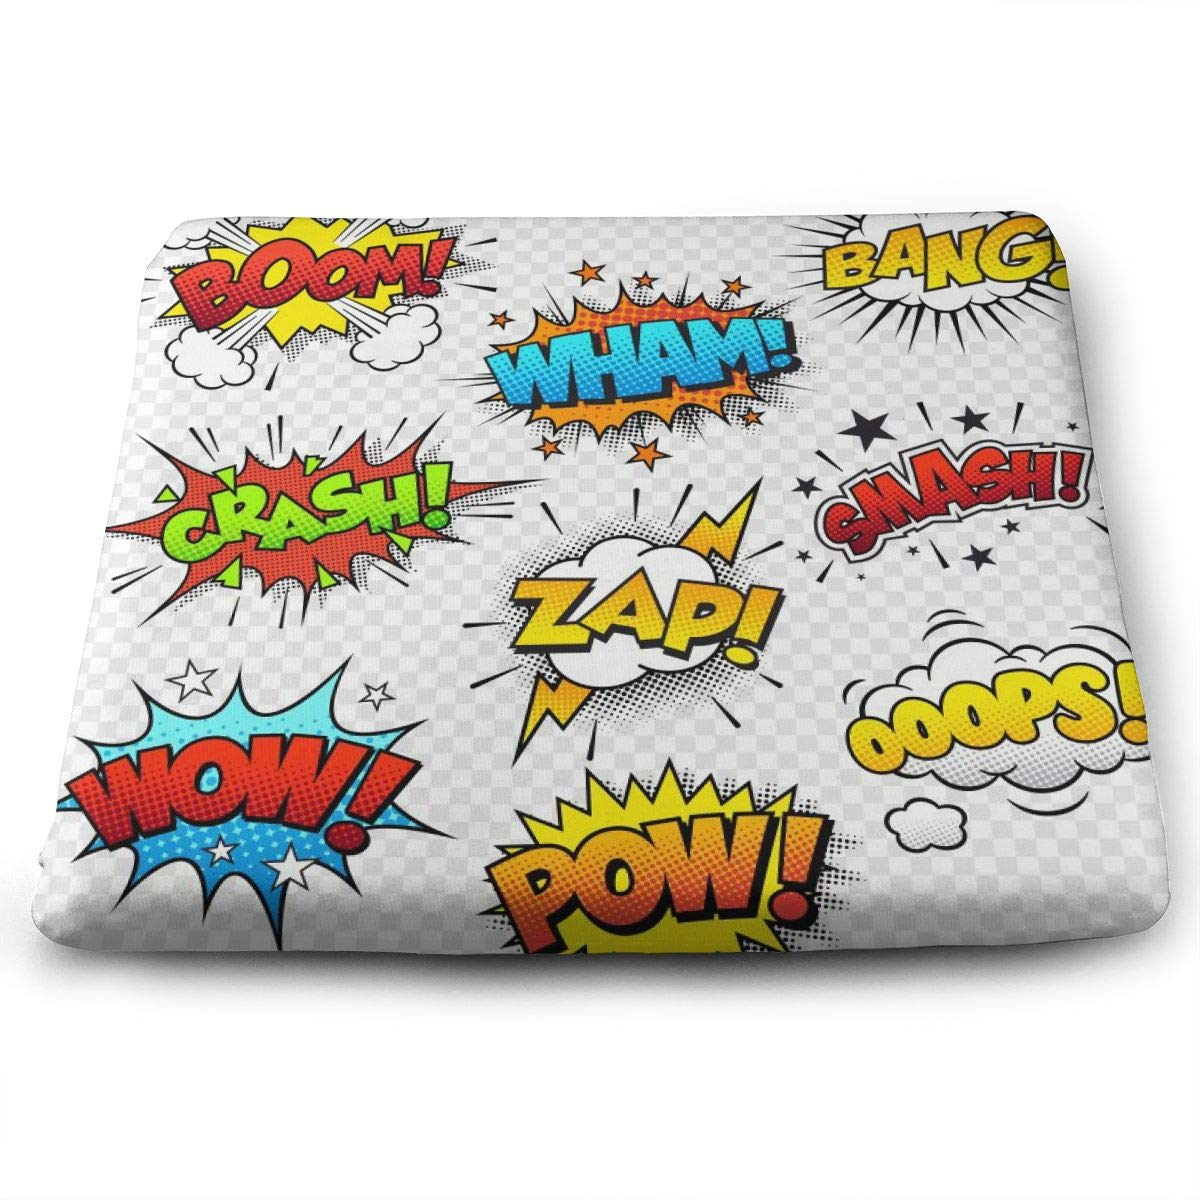 Amazon.com: Pamdart Bang Crash Smash Boom Pow Wow Customized ...